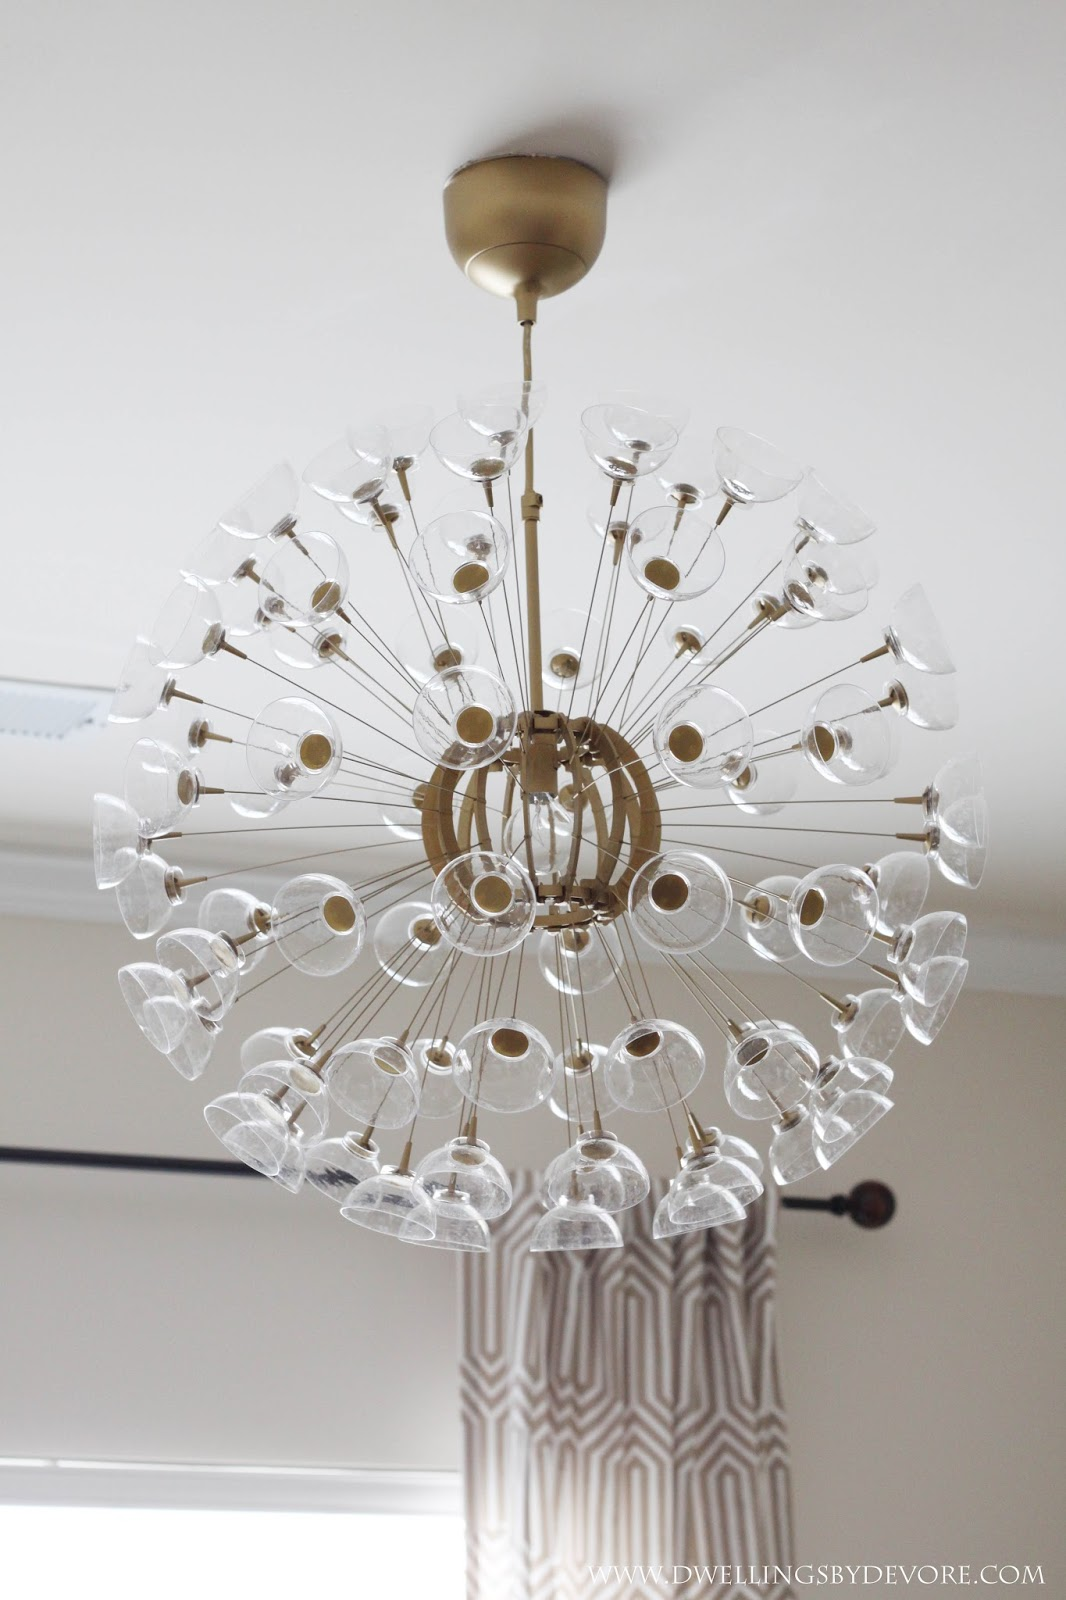 Dwellings By Devore Diy Sputnik Chandelier